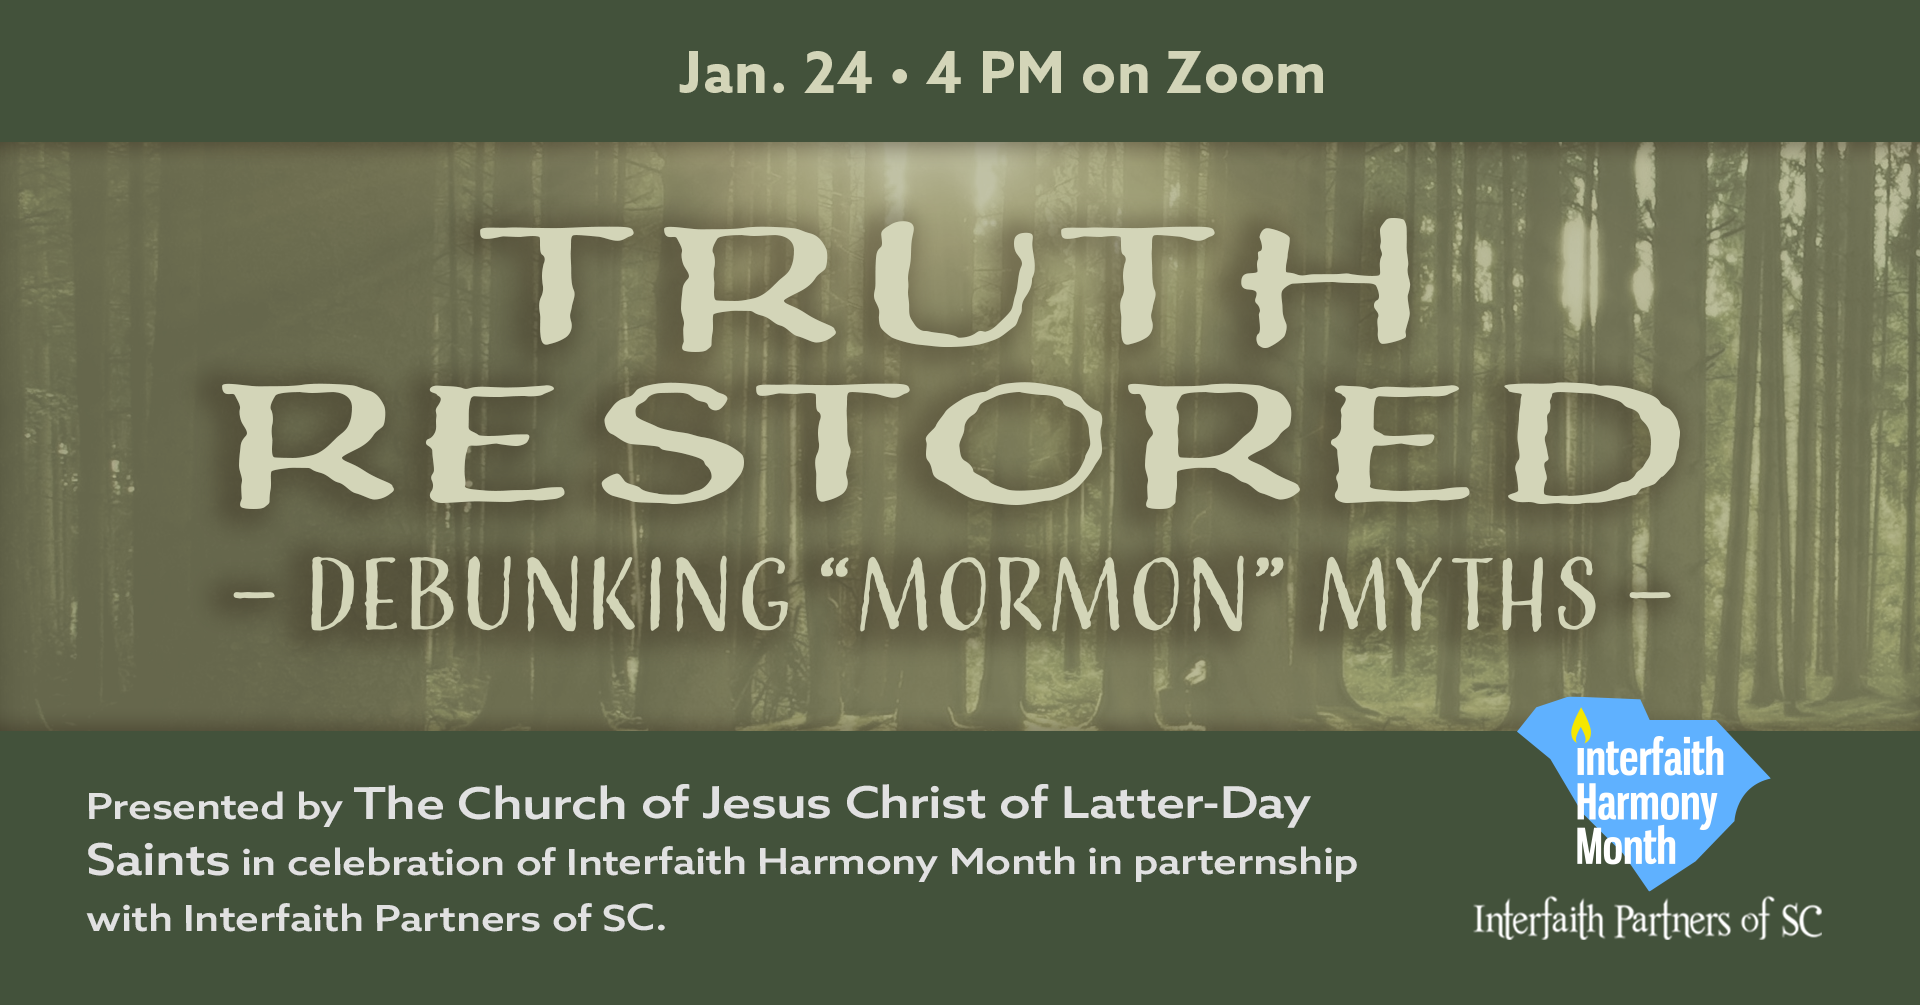 "Truth Restored: Debunking ""Mormon"" Myths. Jan 24 4PM on Zoom. Presented by the Church of Jesus Christ of Latter Day Saints in celebration of Interfaith Harmony Month in partnership with Interfaith Partners of SC."